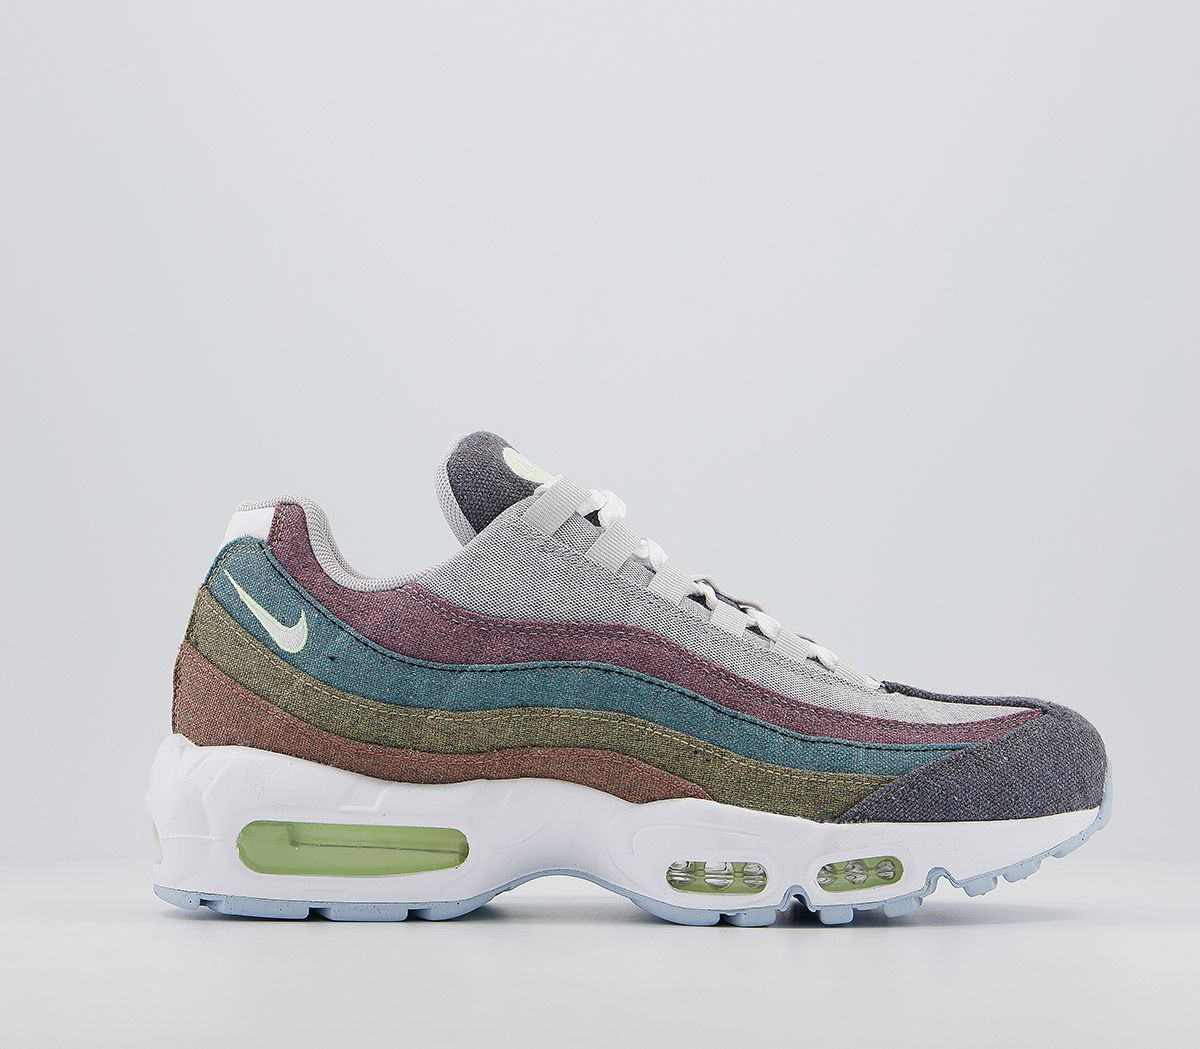 Unisex Nike Air Max 95 Trainers Trainers Nrg Vast Grey White Barely Volt Crimson Vast Grey 2026424559